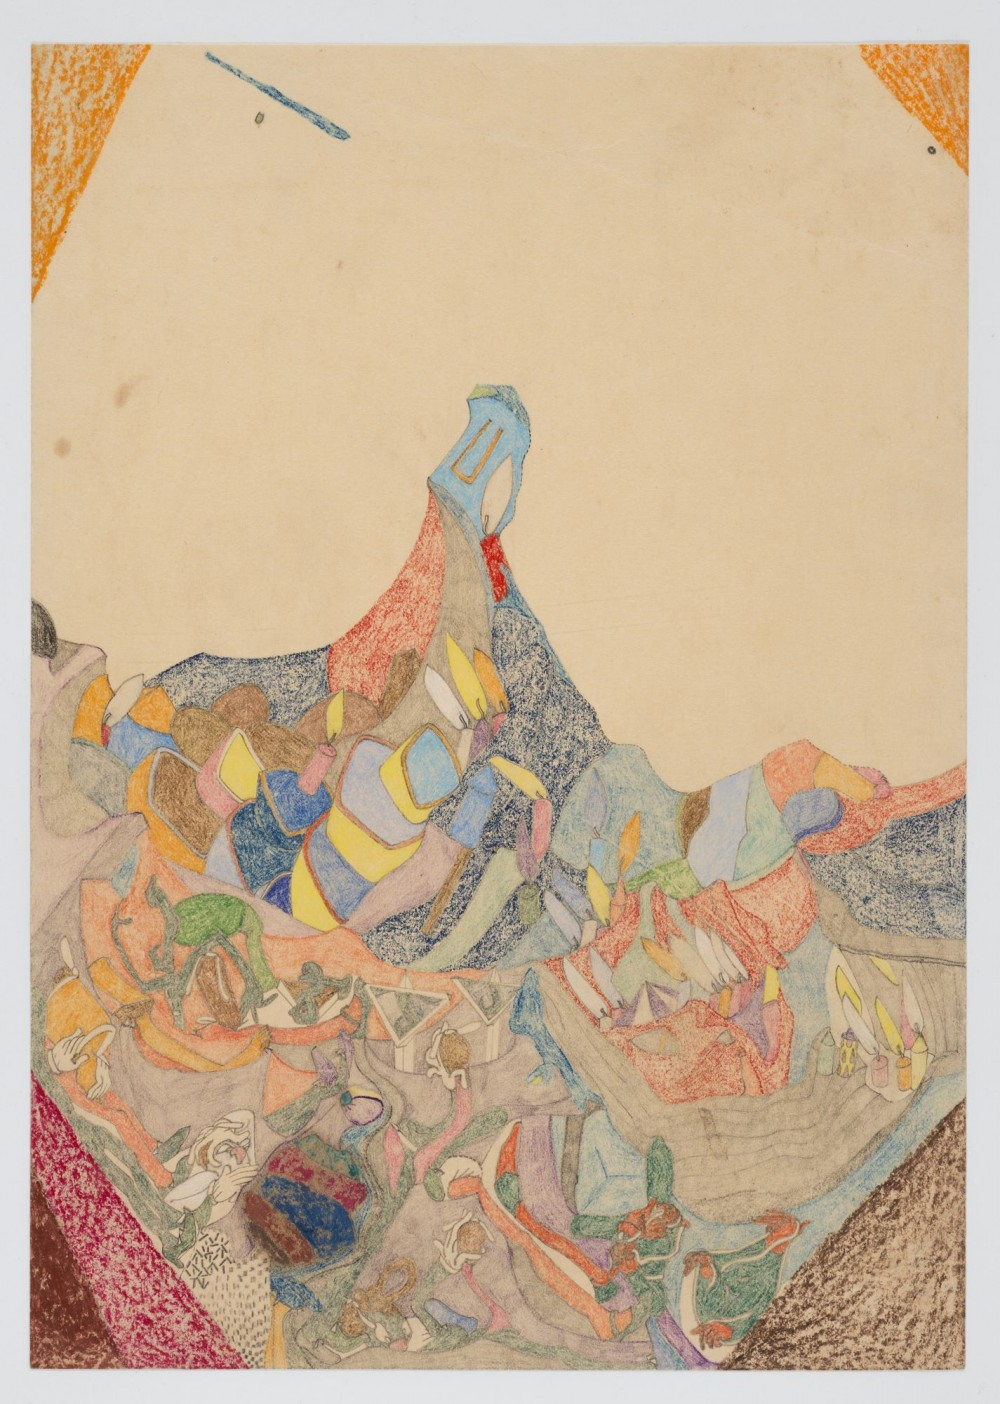 Susan Te Kahurangi King, *Paperdwellers*, 2018  18. *Untitled*, Susan Te Kahurangi King, graphite, coloured pencil and crayon on paper, c.1975 – c. 1980.   Image: Courtesy of private collection, 2018